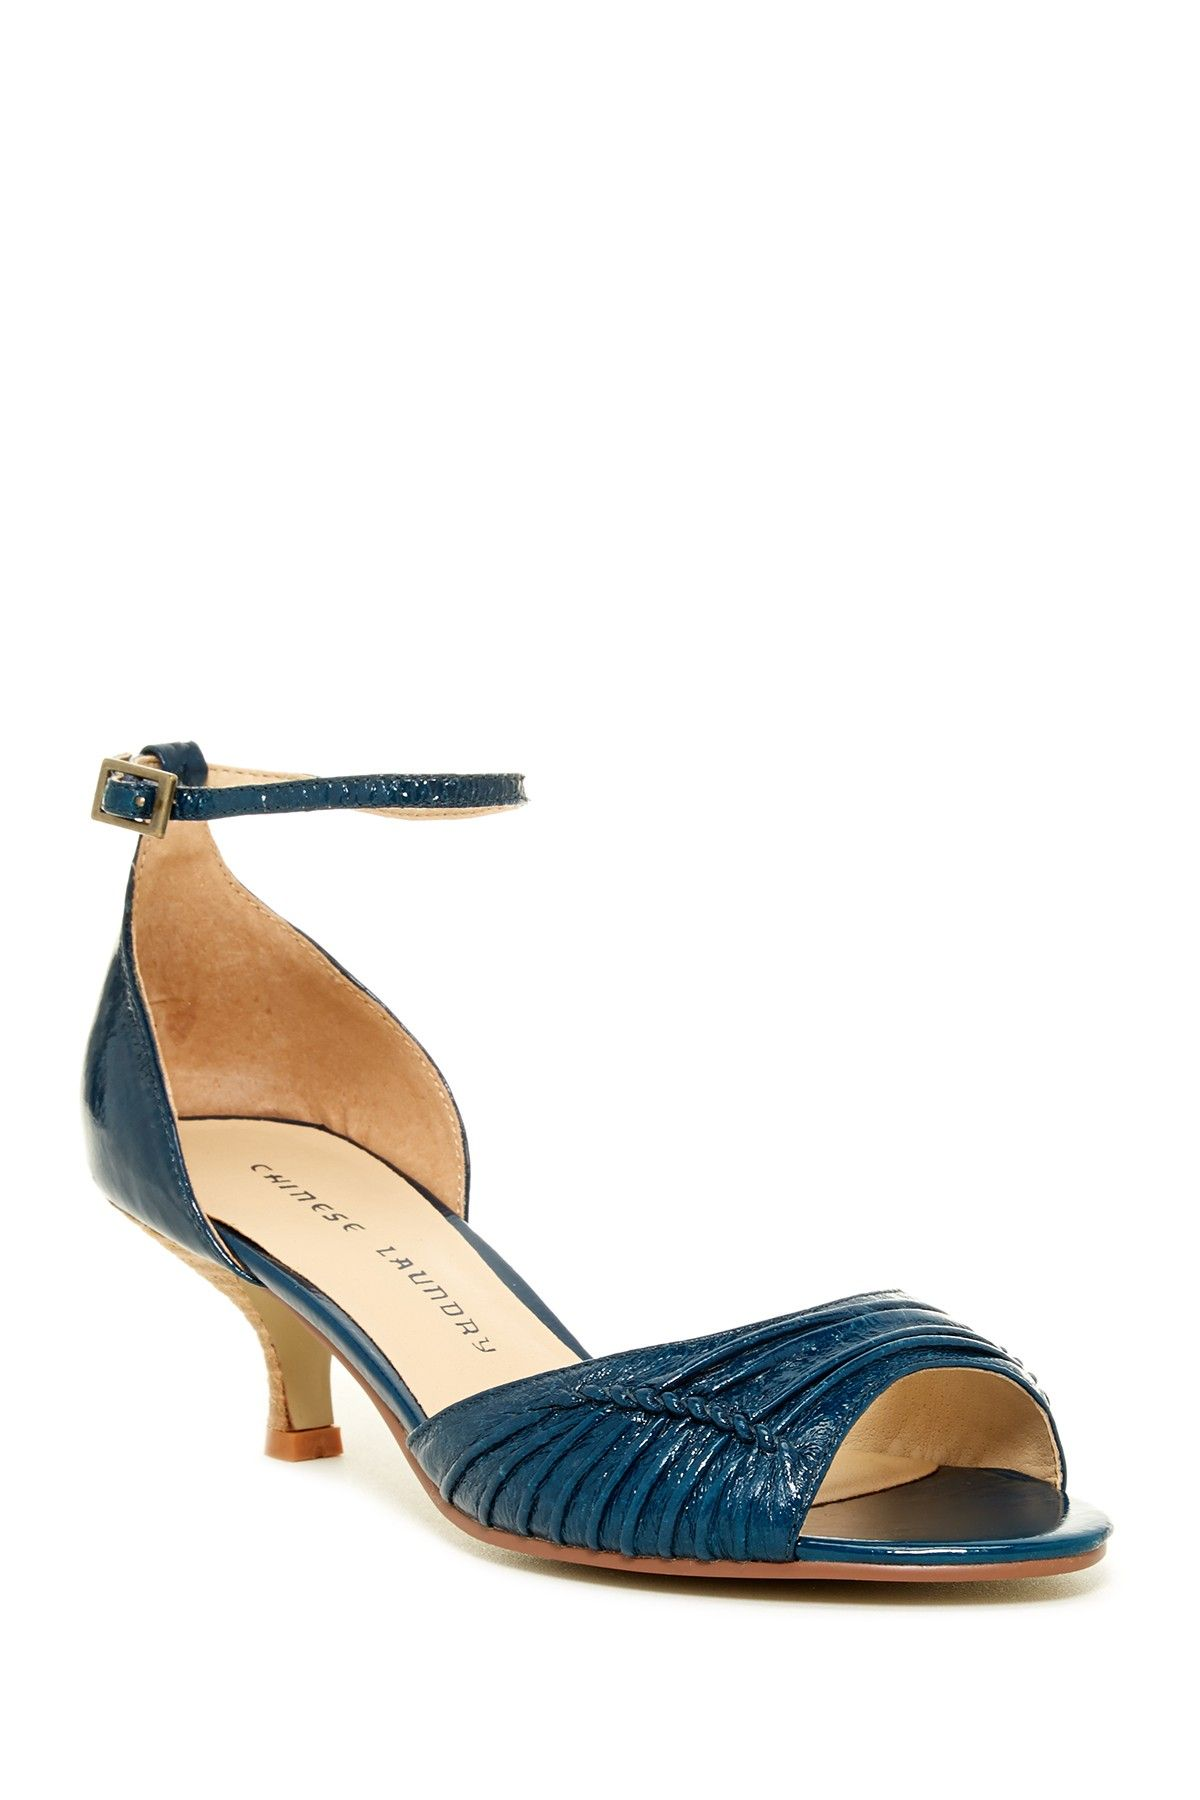 25+ Nordstrom canada wedding shoes info